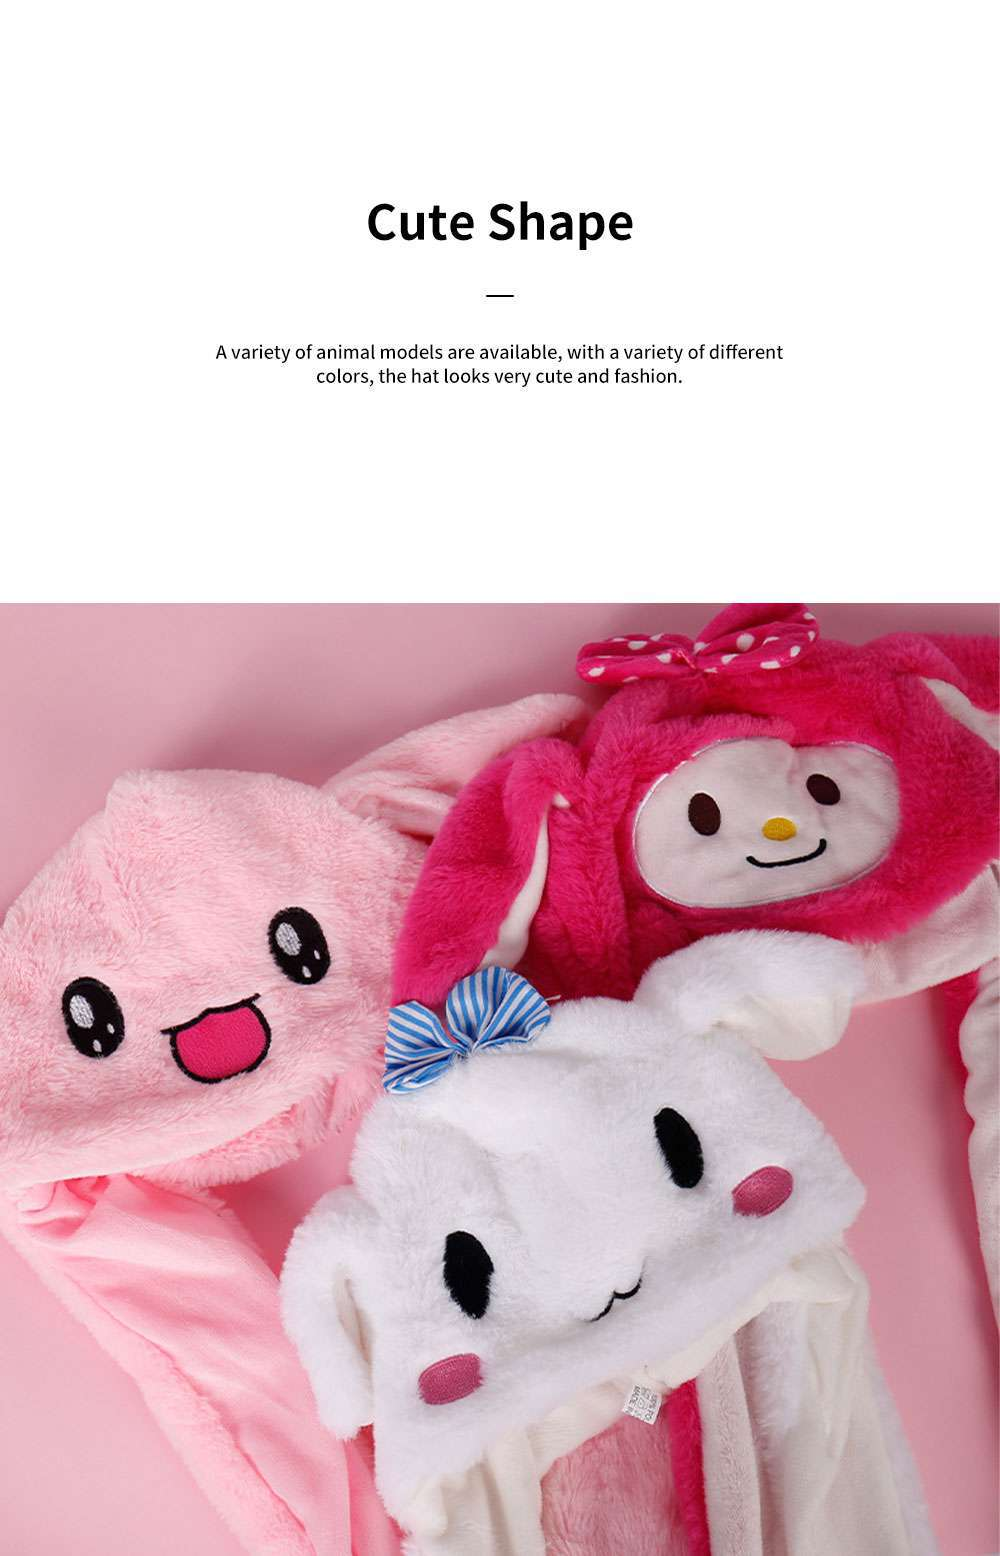 Cute Rabbit Hat Windproof Funny Plush Bunny Cap with Ears Pop Up and Colorful Light for Women Girls Christmas Gift 4